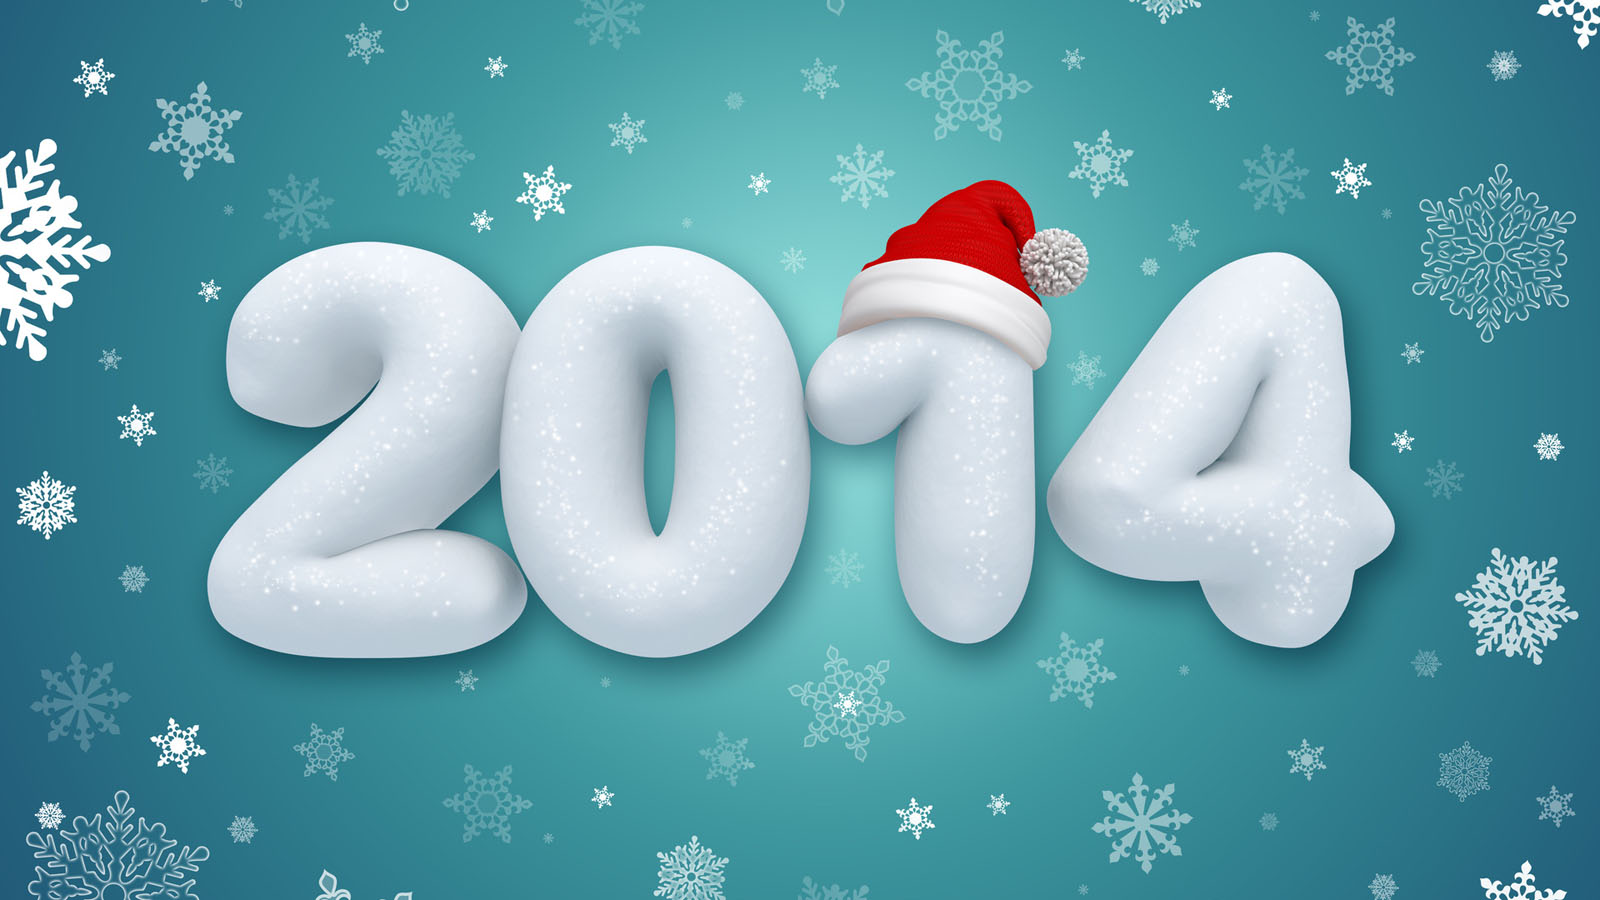 25 Beautiful 2014 New Year Wallpapers for your desktop